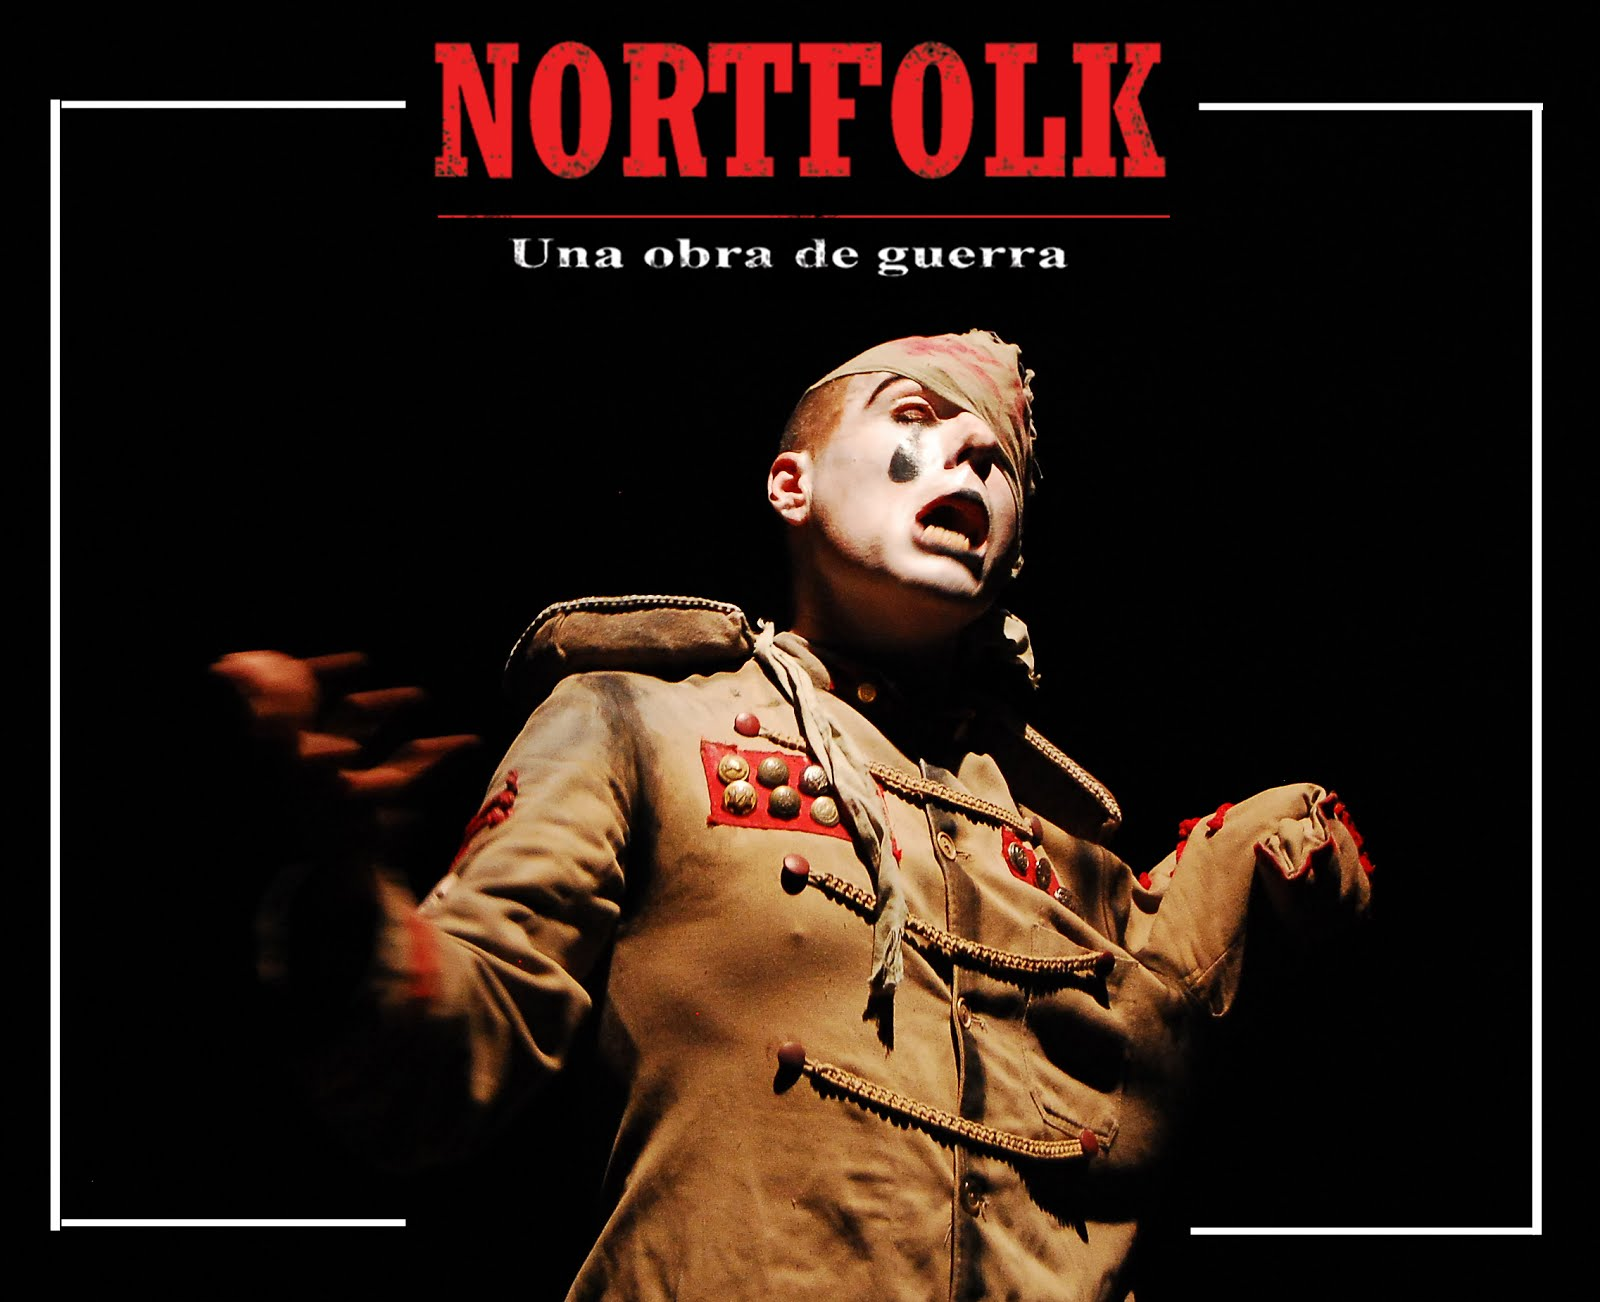 Obra teatral: Nortfolk